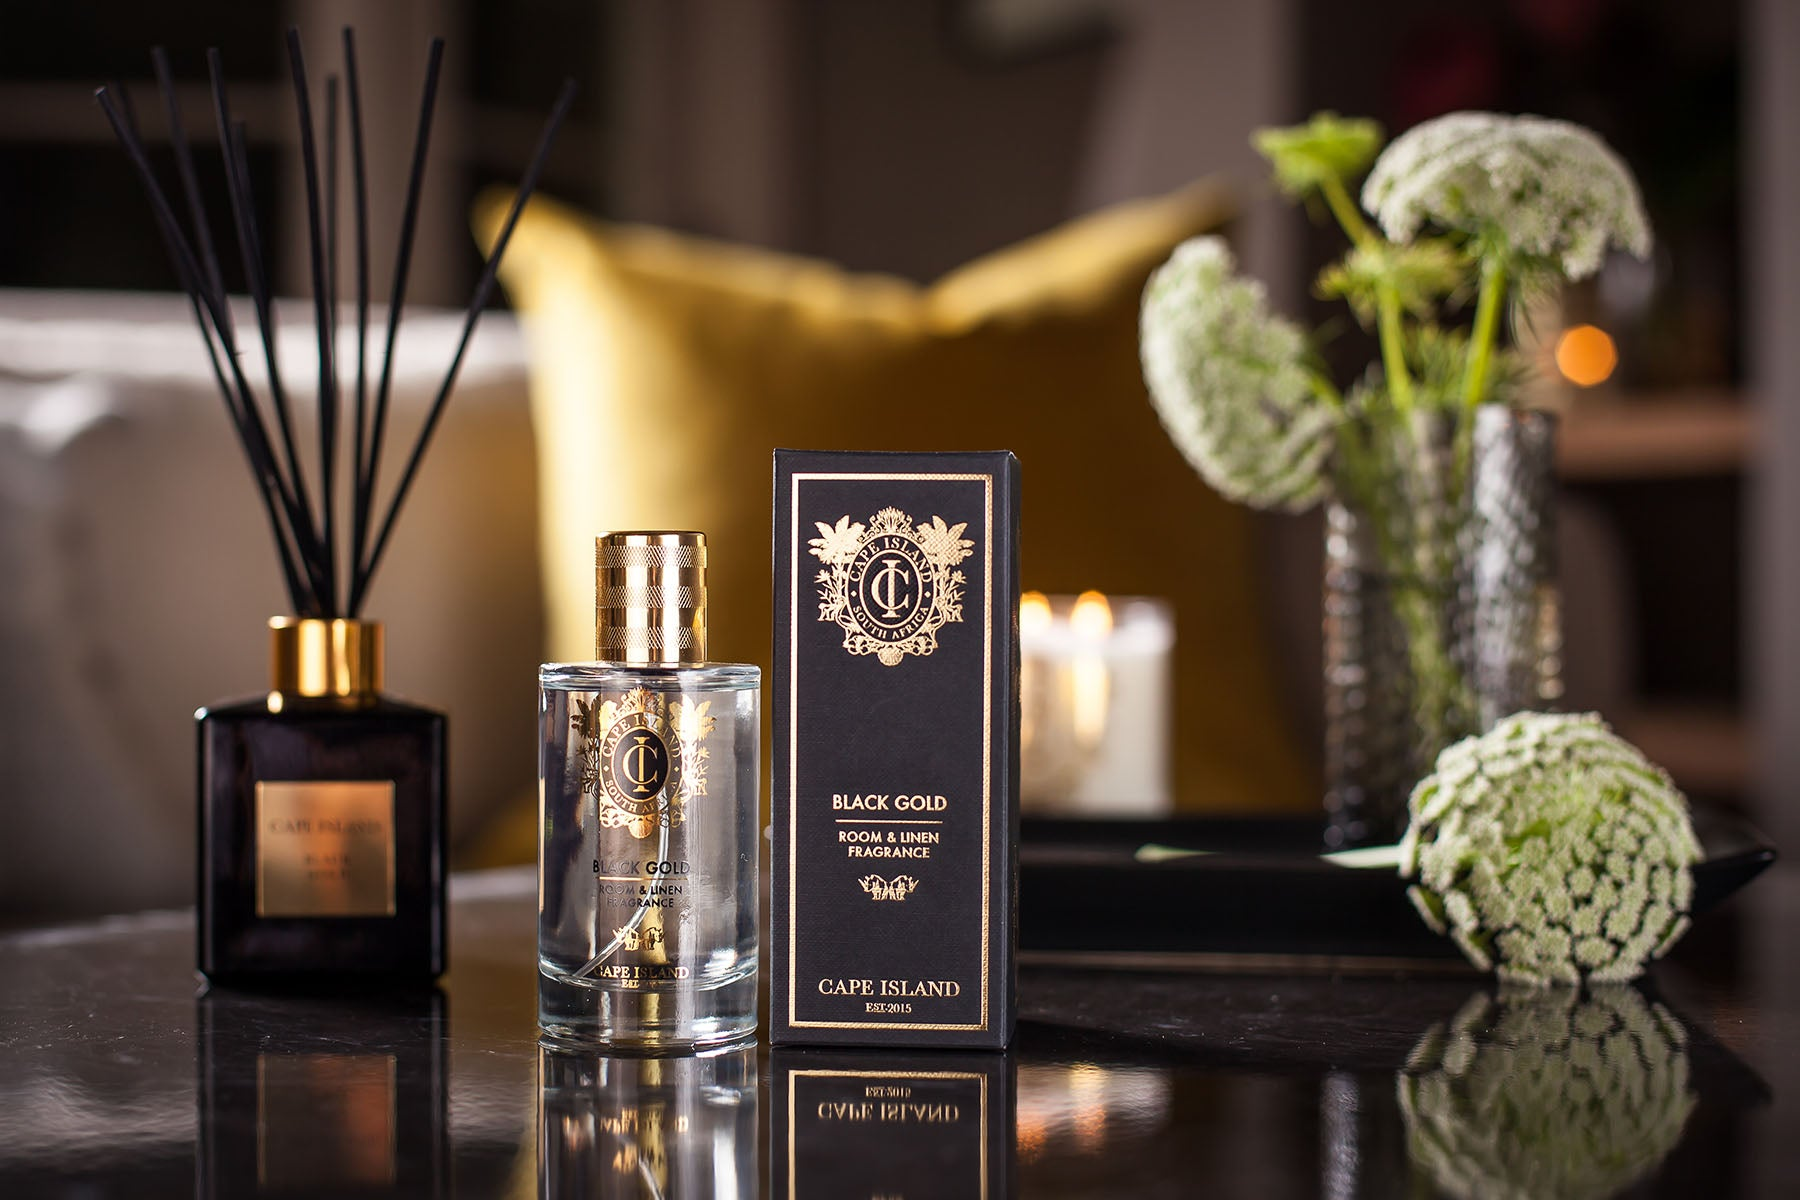 The Cape Island Black Gold candle and fragrance diffuser. Cape Island luxury candles, soap products and home fragrances are available at Sarza home goods and furniture store in Rye New York.